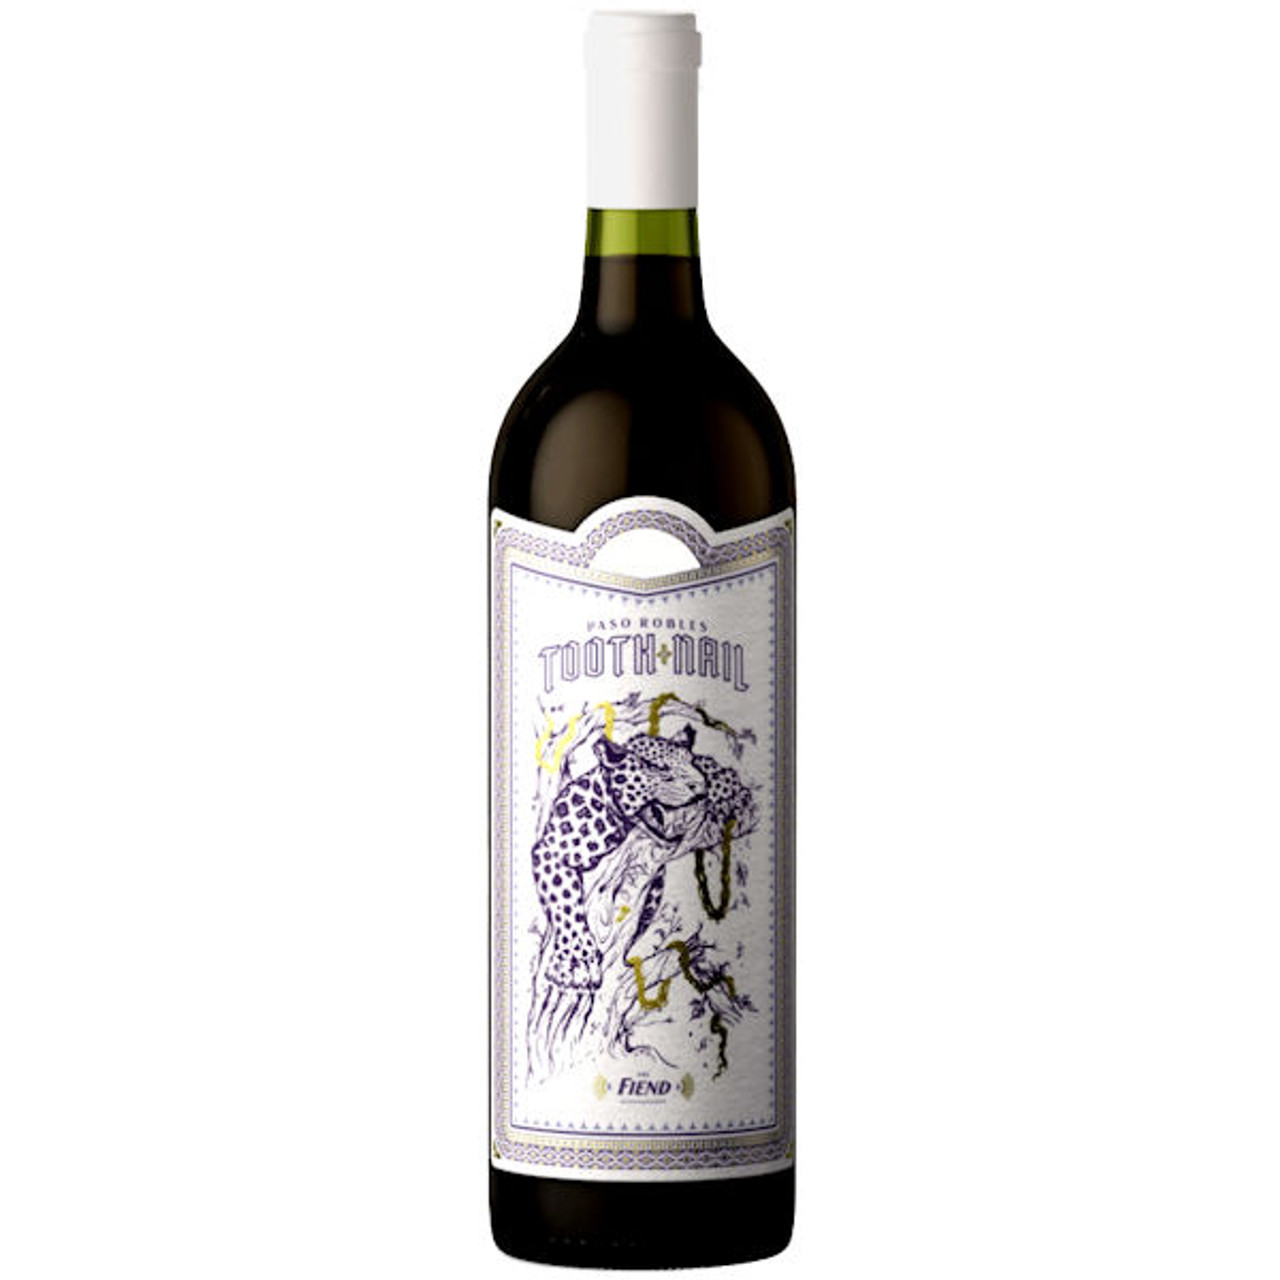 Tooth and Nail The Fiend Paso Robles Red Blend 2016